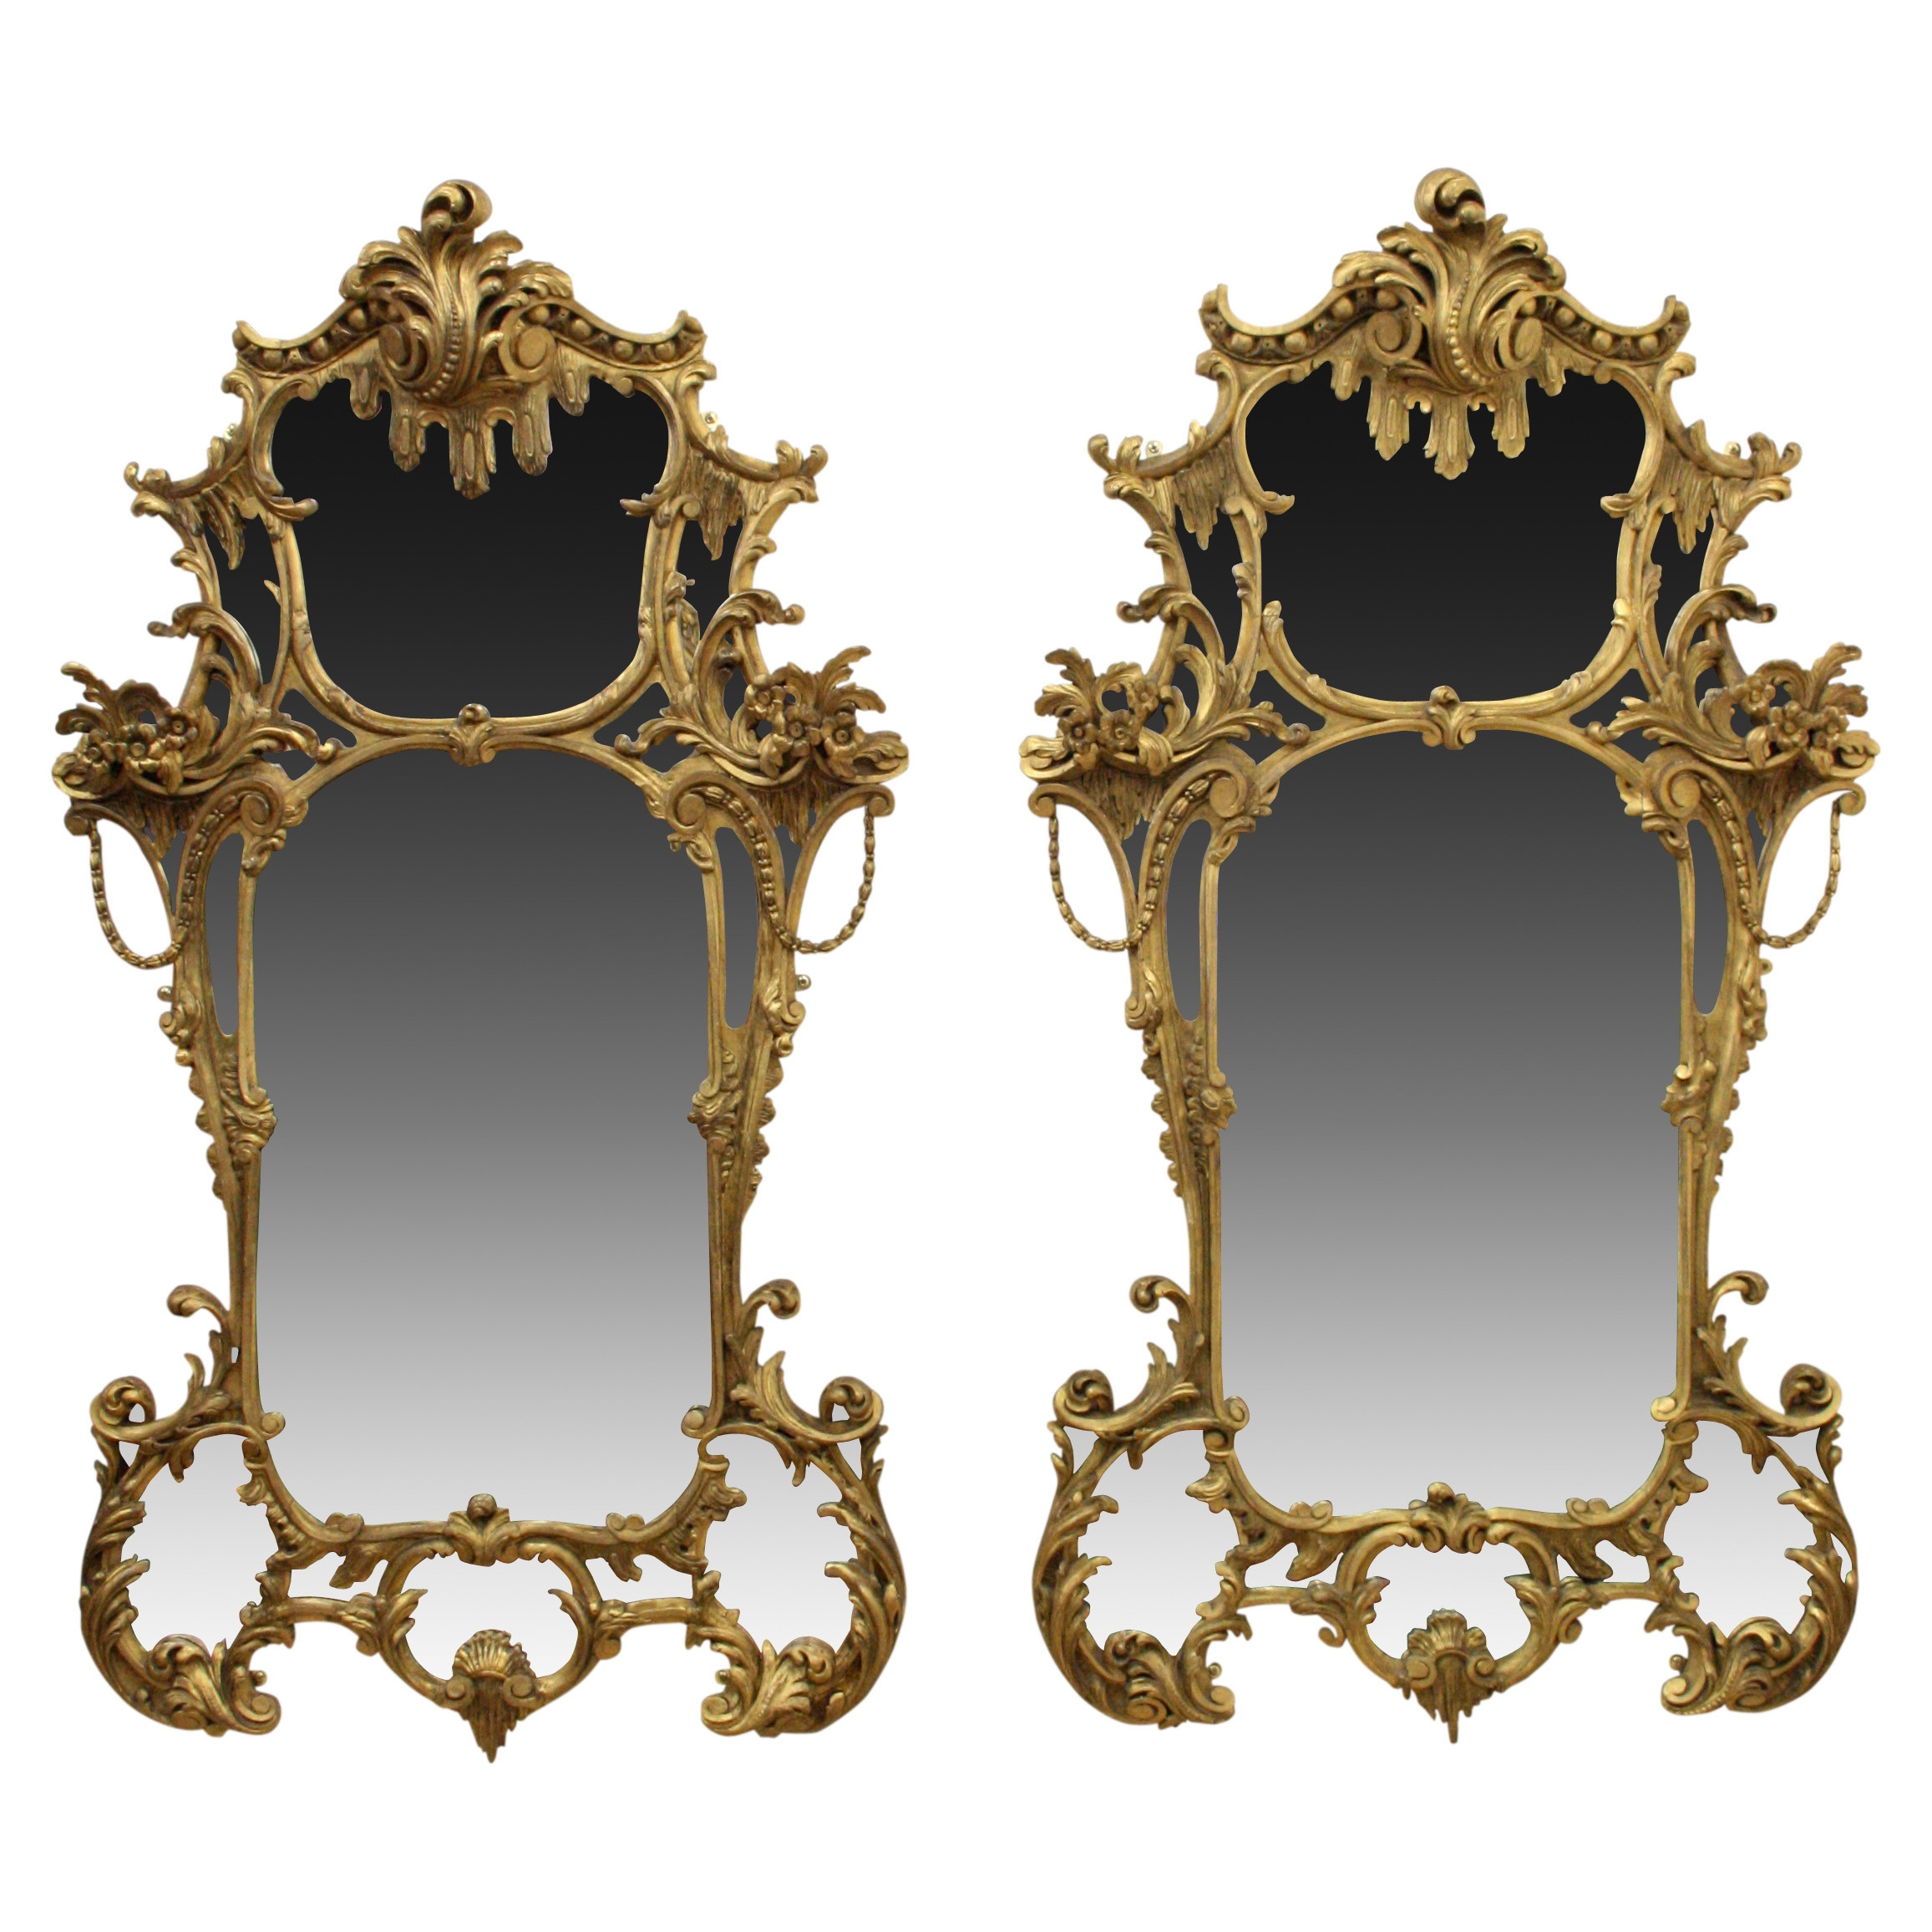 Pair Of Rococo Style Gilt Mirrors C 1860 United Kingdom From Pertaining To Rococo Style Mirrors (Image 12 of 15)